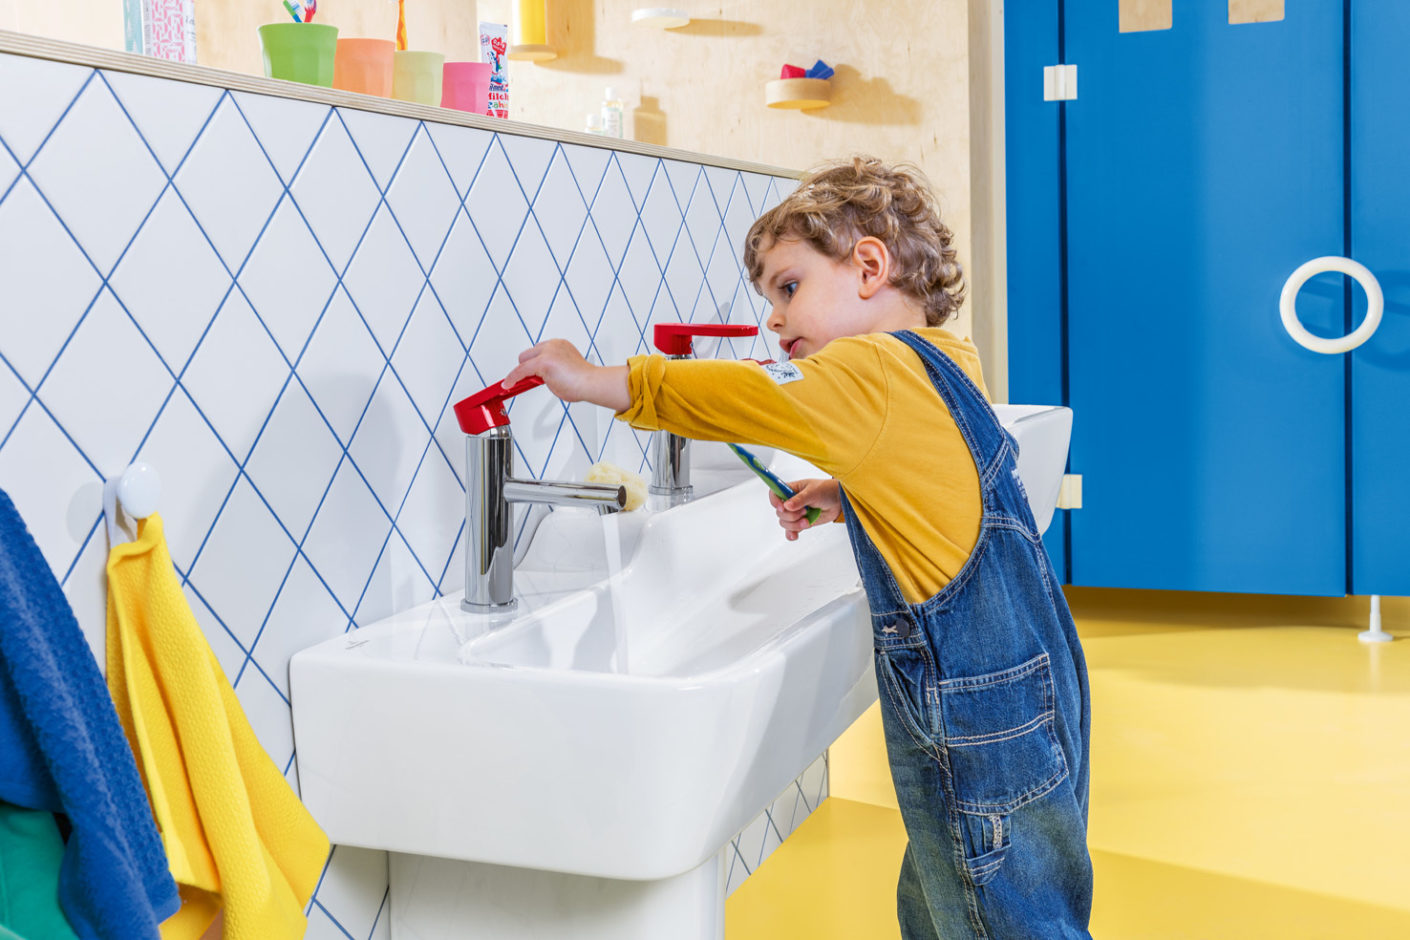 "In the way of faucets ""O.novo Kids"" offers a single-lever mixer with scald protection which allows small users to set water pressure and temperature easily and by themselves."